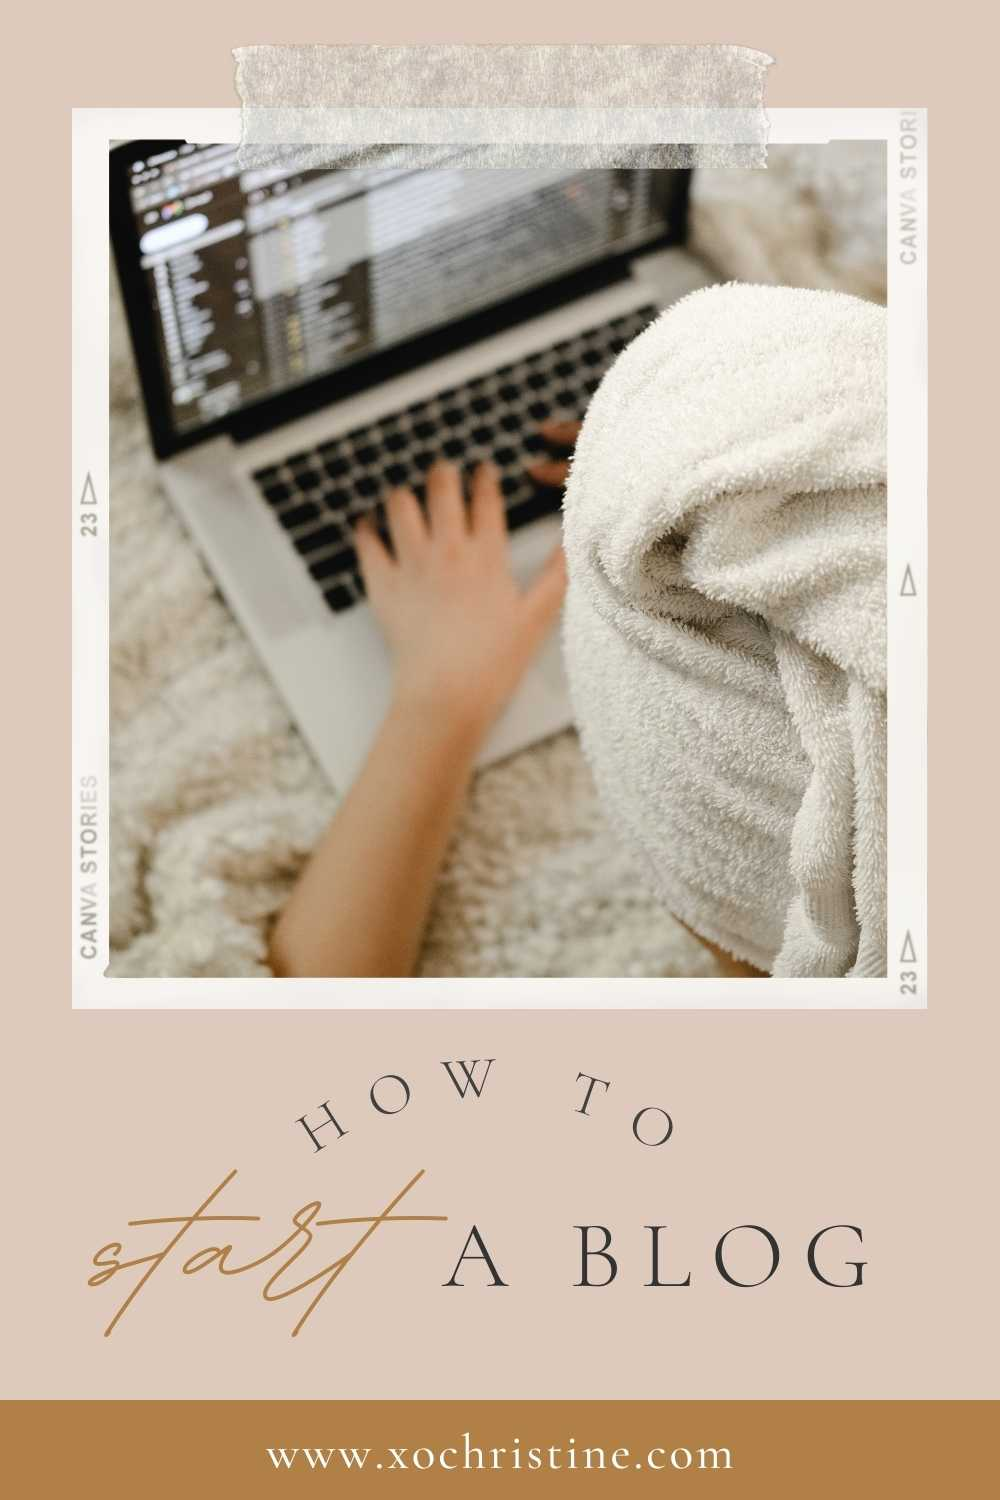 How to Start a WordPress Blog in Just 10 Easy Steps